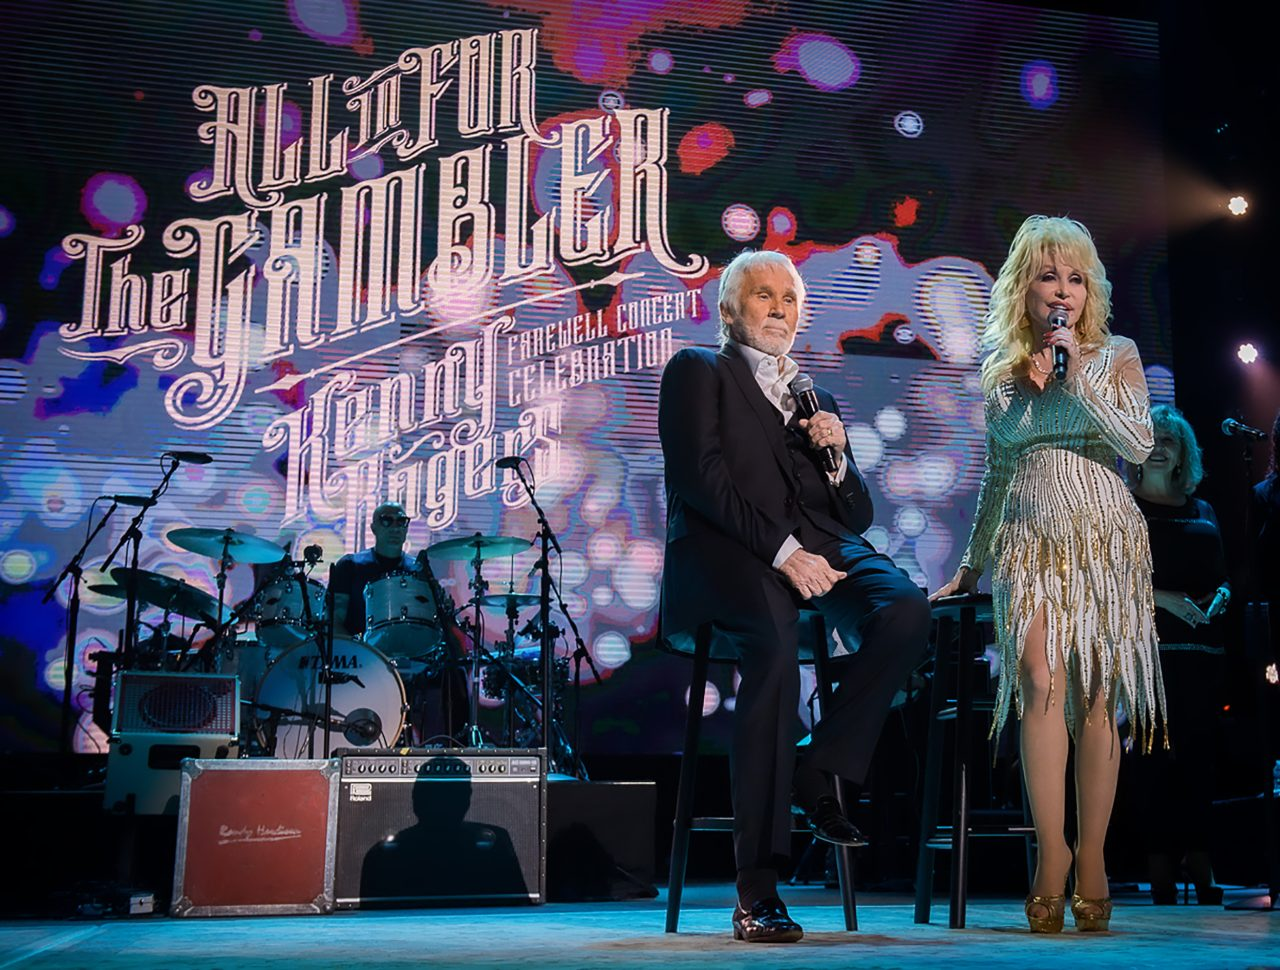 Five Takeaways from A&E's 'Biography: Kenny Rogers' Special